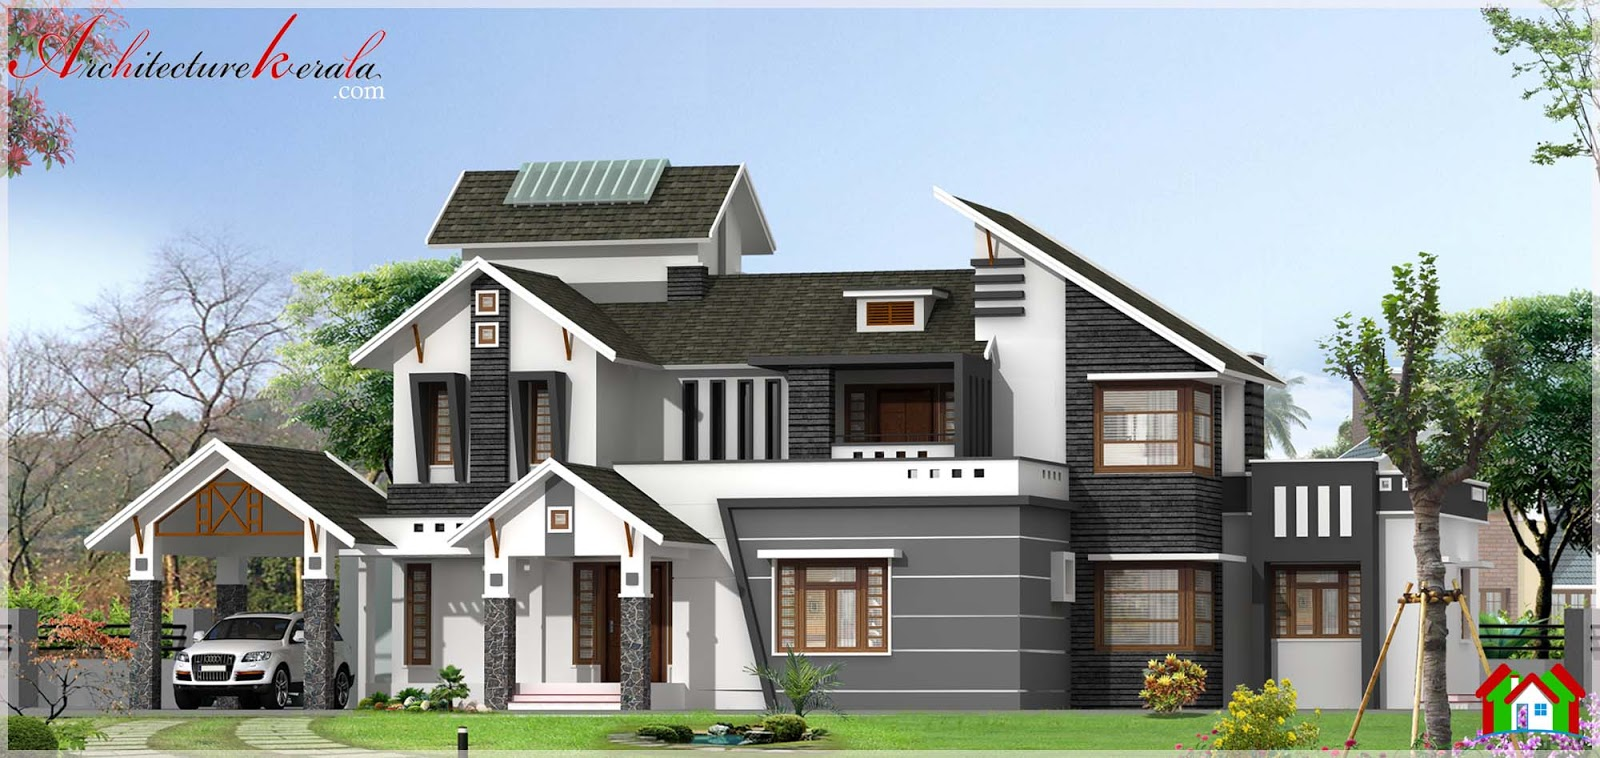 Modern house elevation in 3000 square feet architecture for Home designs 3000 square feet